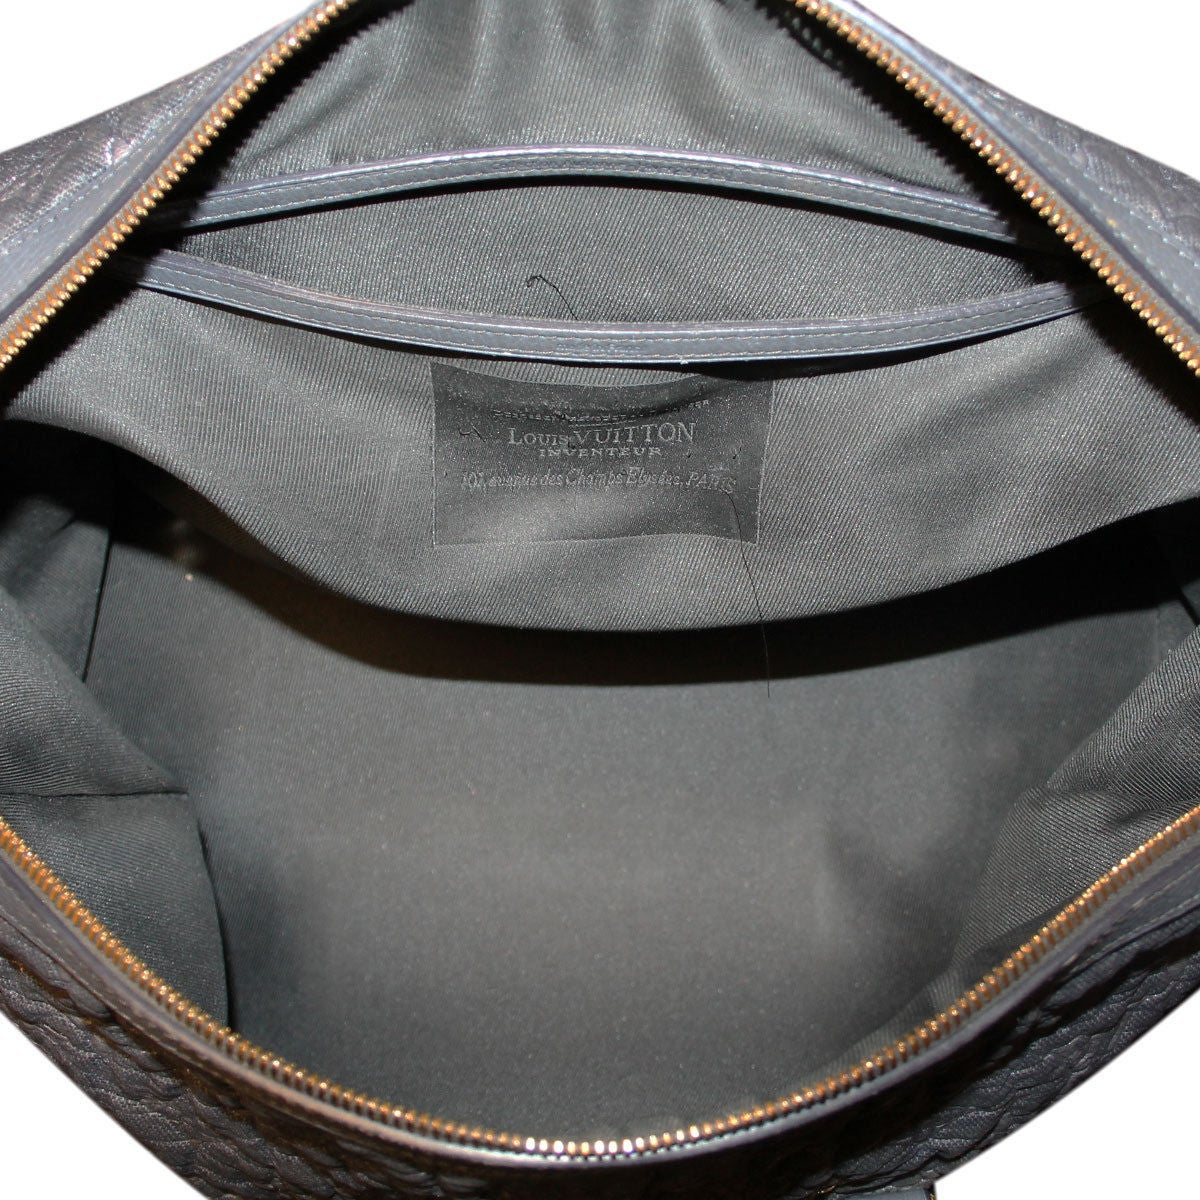 Louis Vuitton Volupte Psyche Leather Gris Bag Purse For Sale At 1stdibs